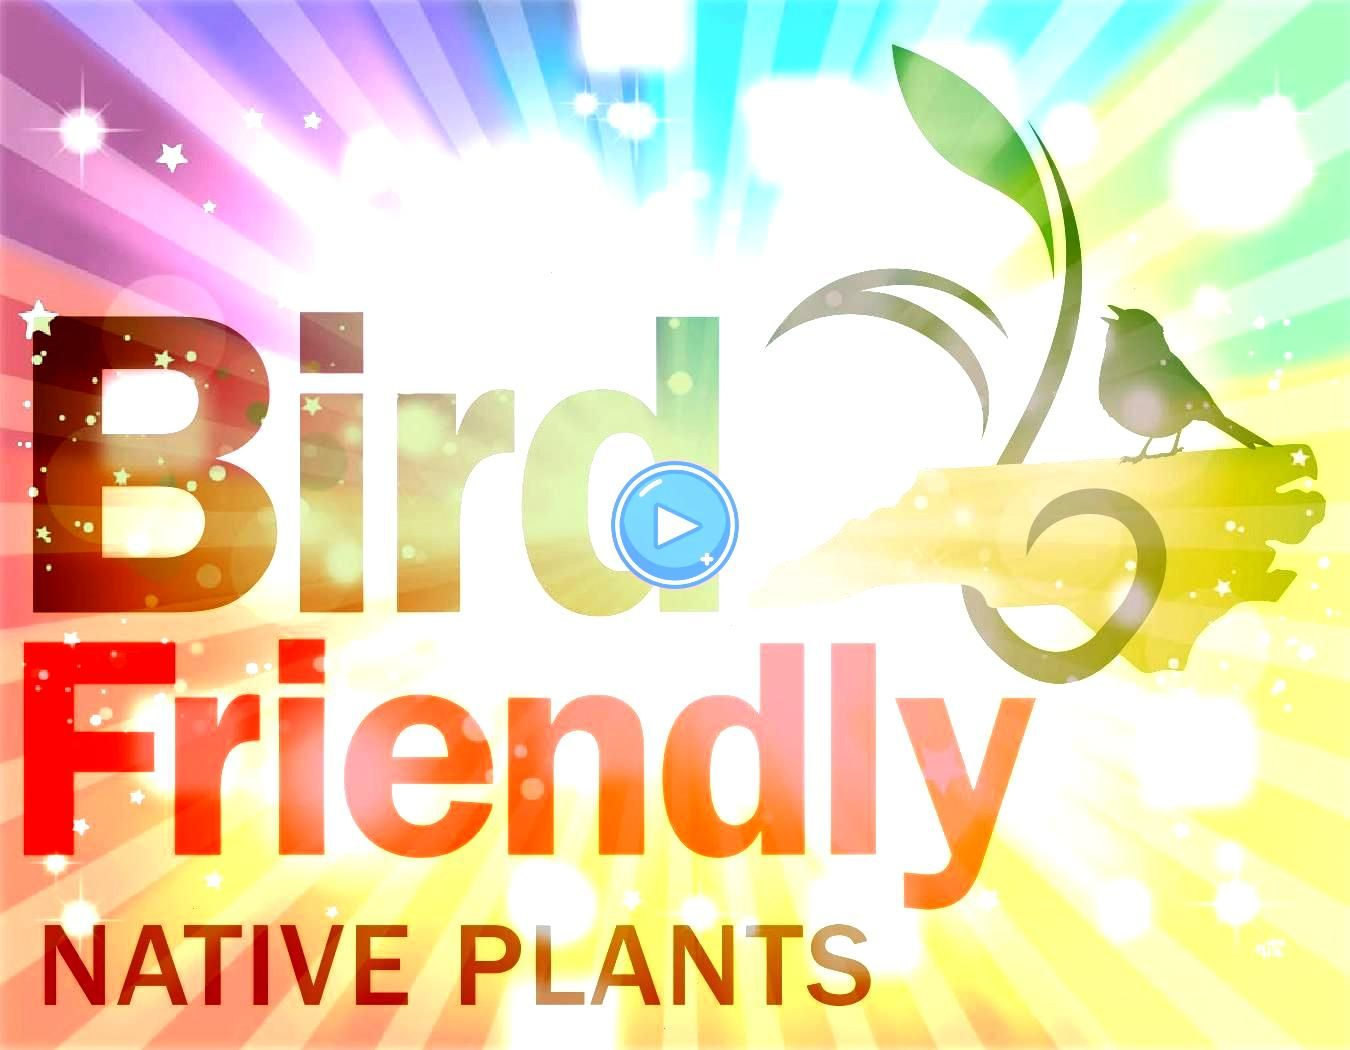 of 400 recommended birdfriendly native plants serve as a guide for everyone interested in choosing plants that help birds thrive alongside peopleThis list of 400 recommen...